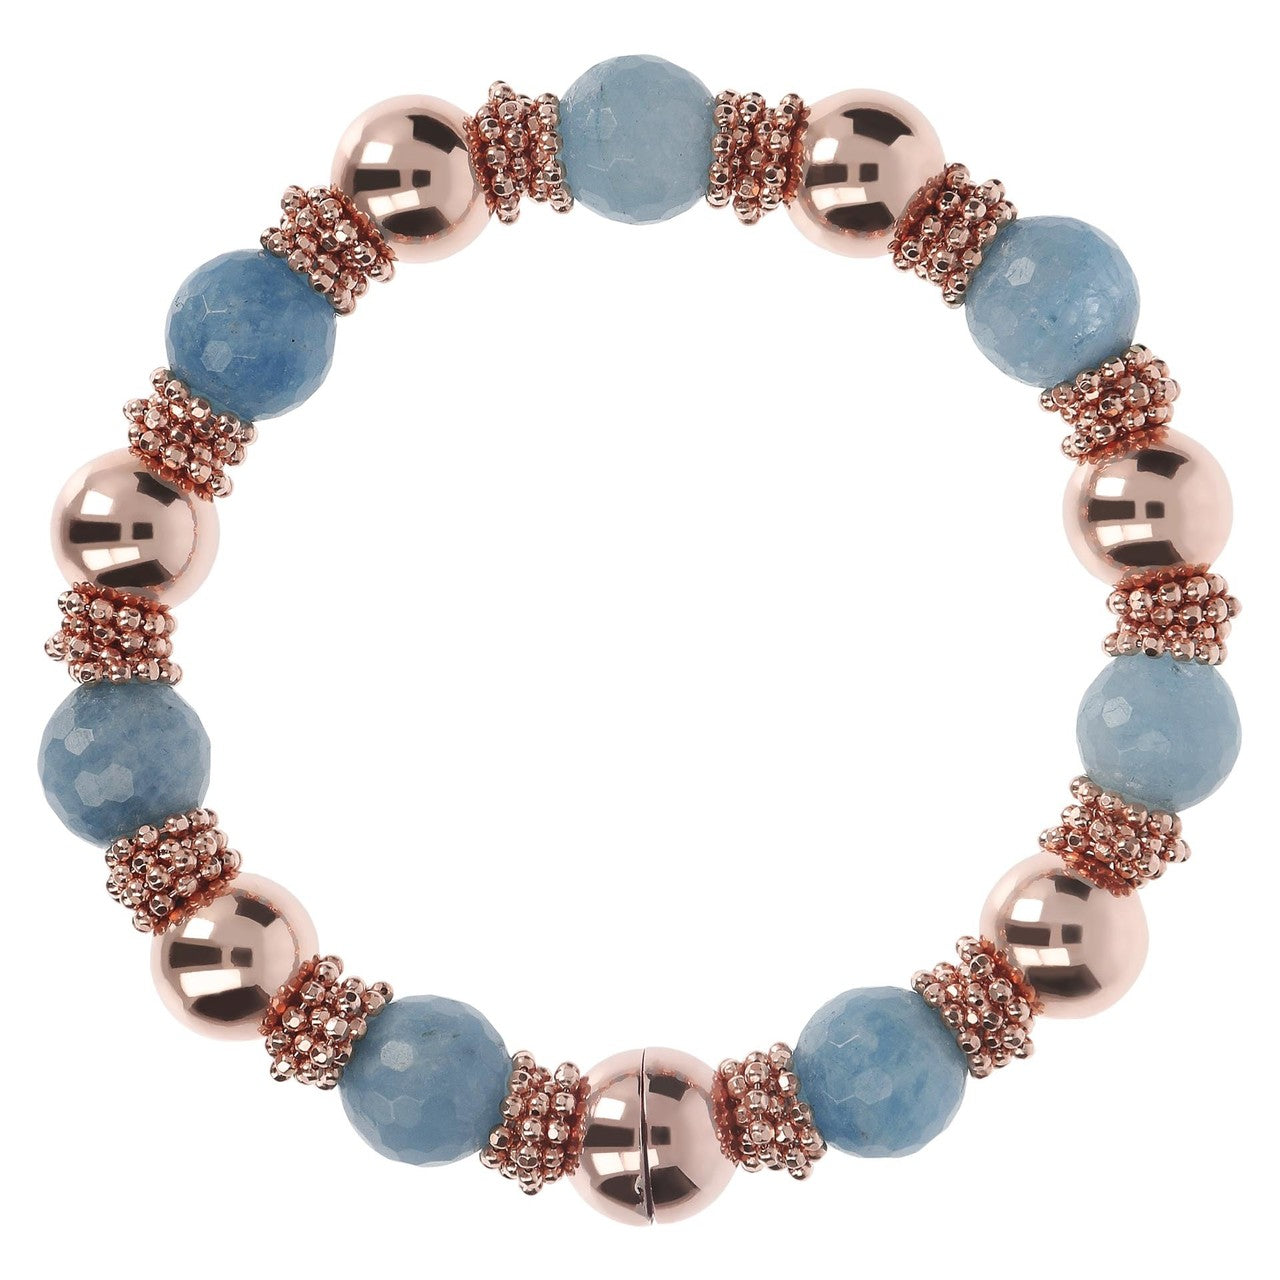 Blue Quartzite Bracelet with Beads